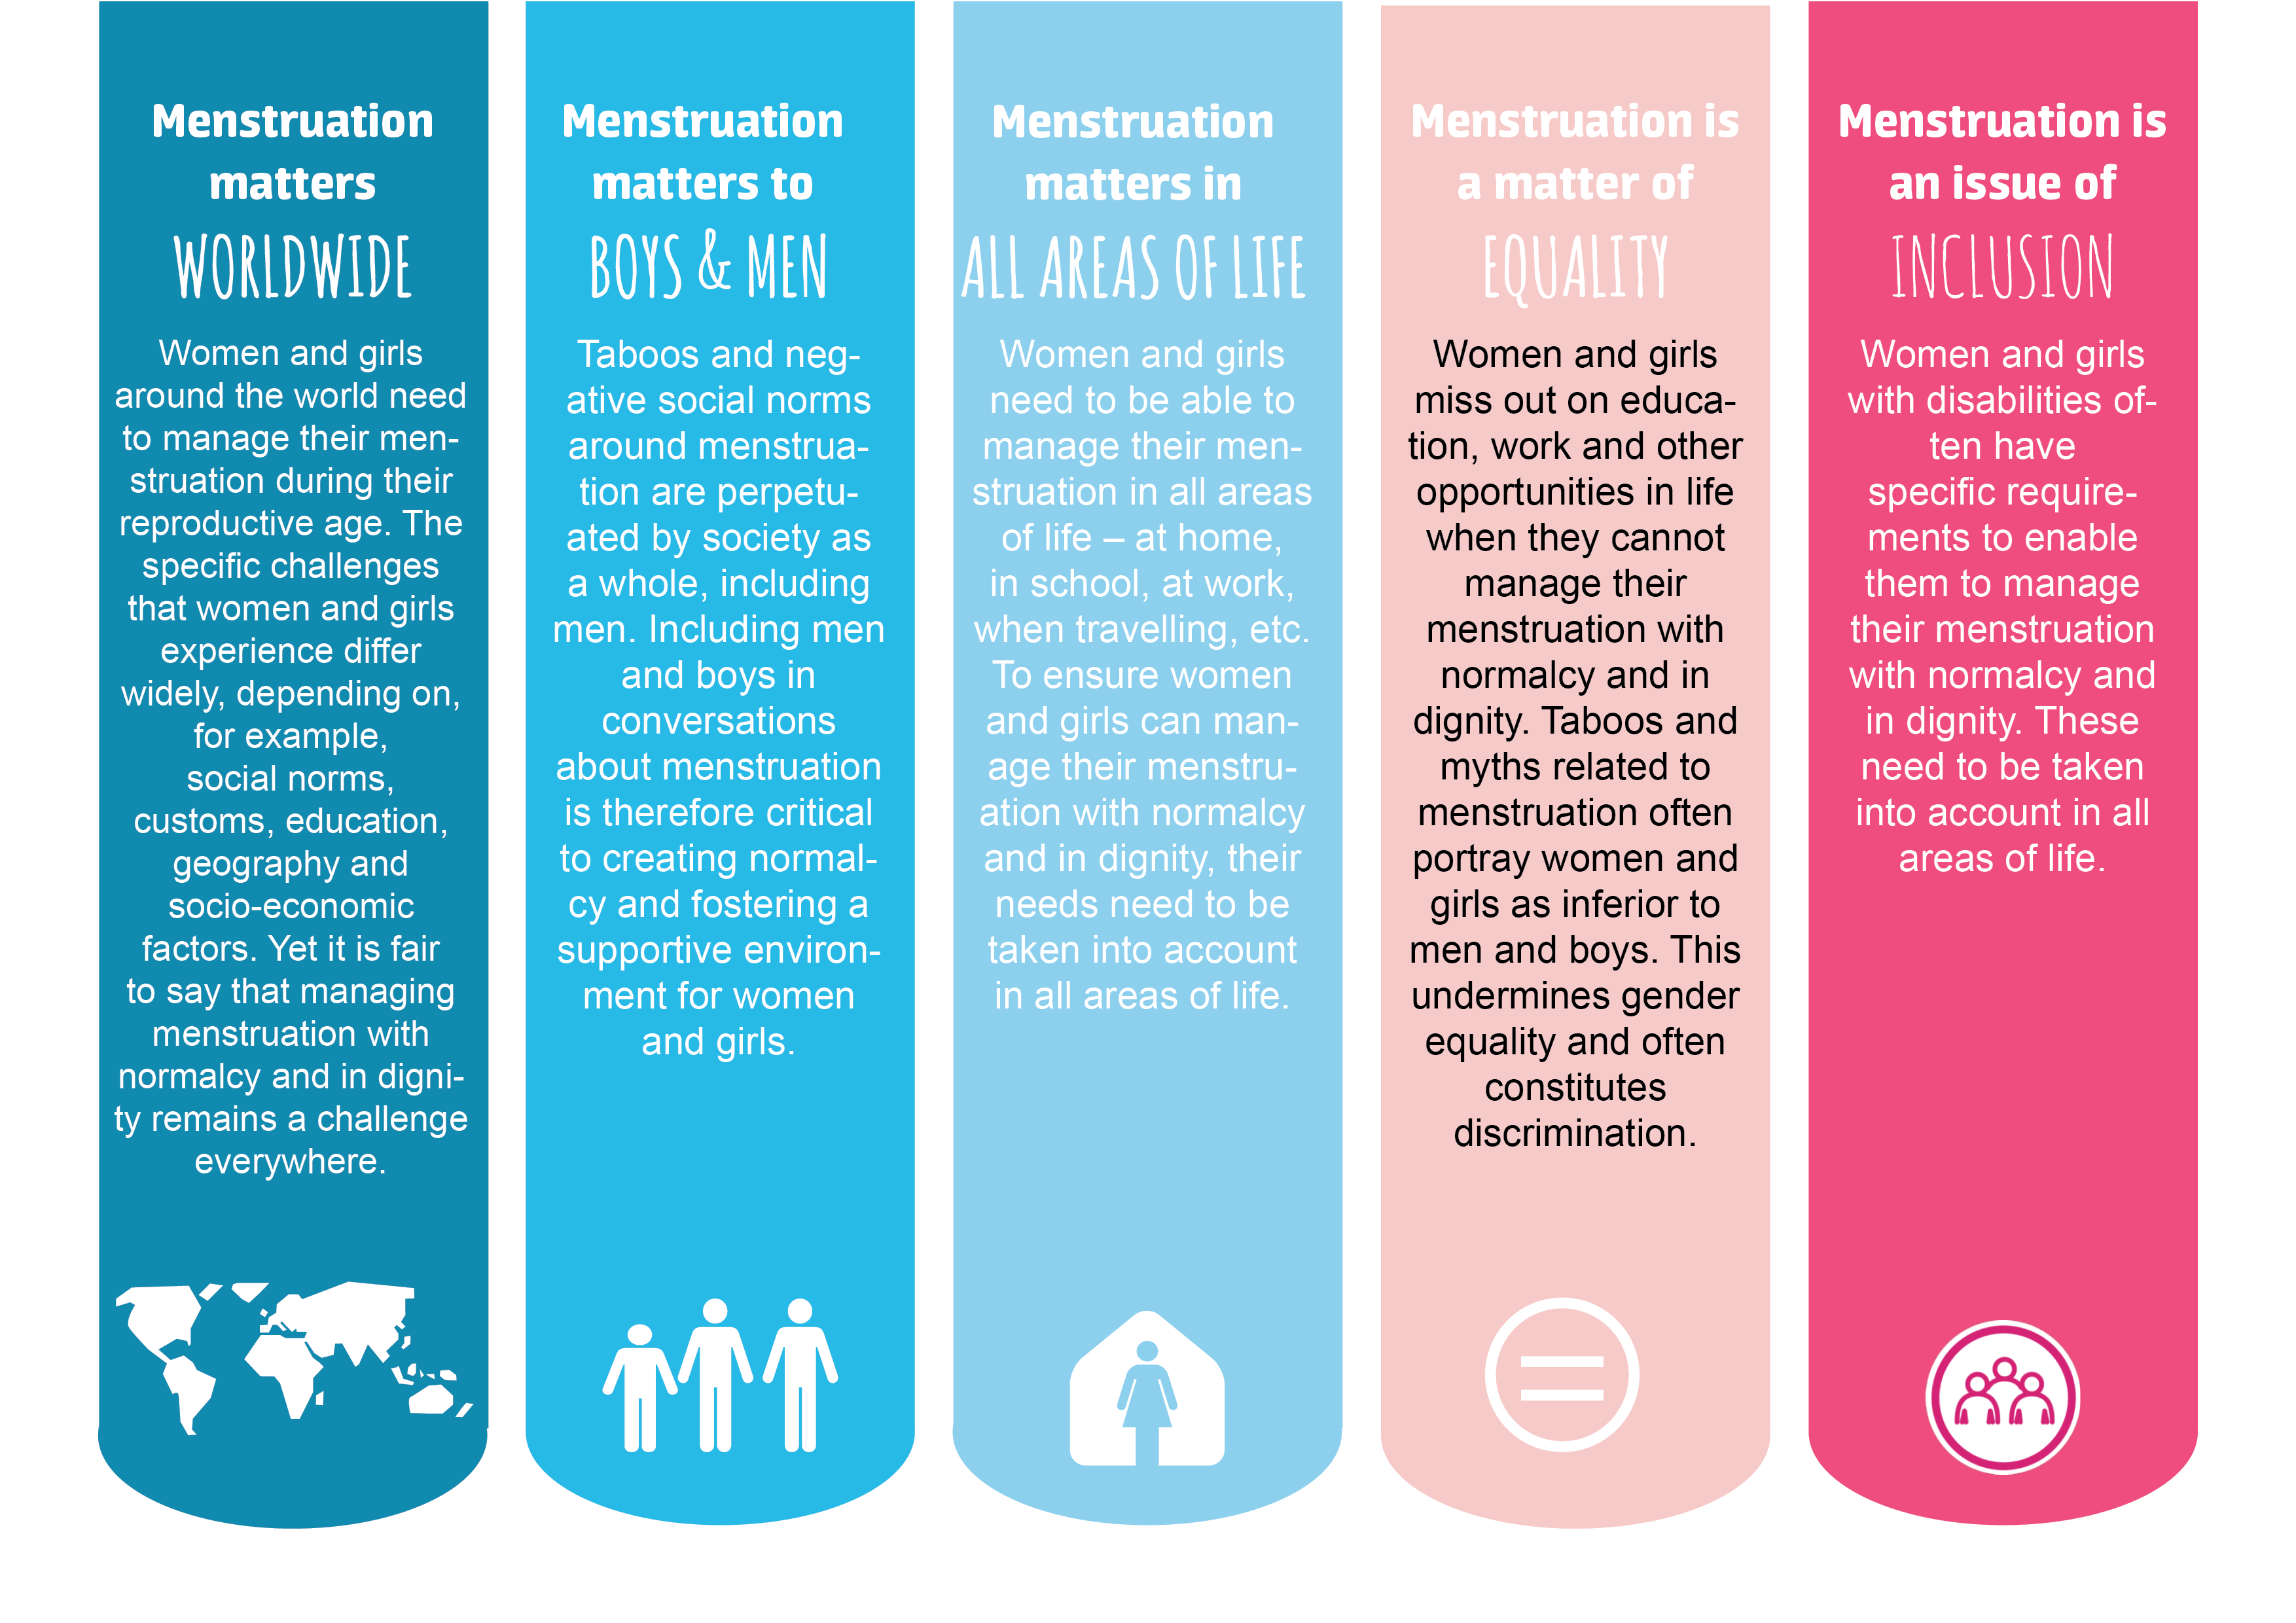 Menstruation Matters To Everyone Everywhere Mhday